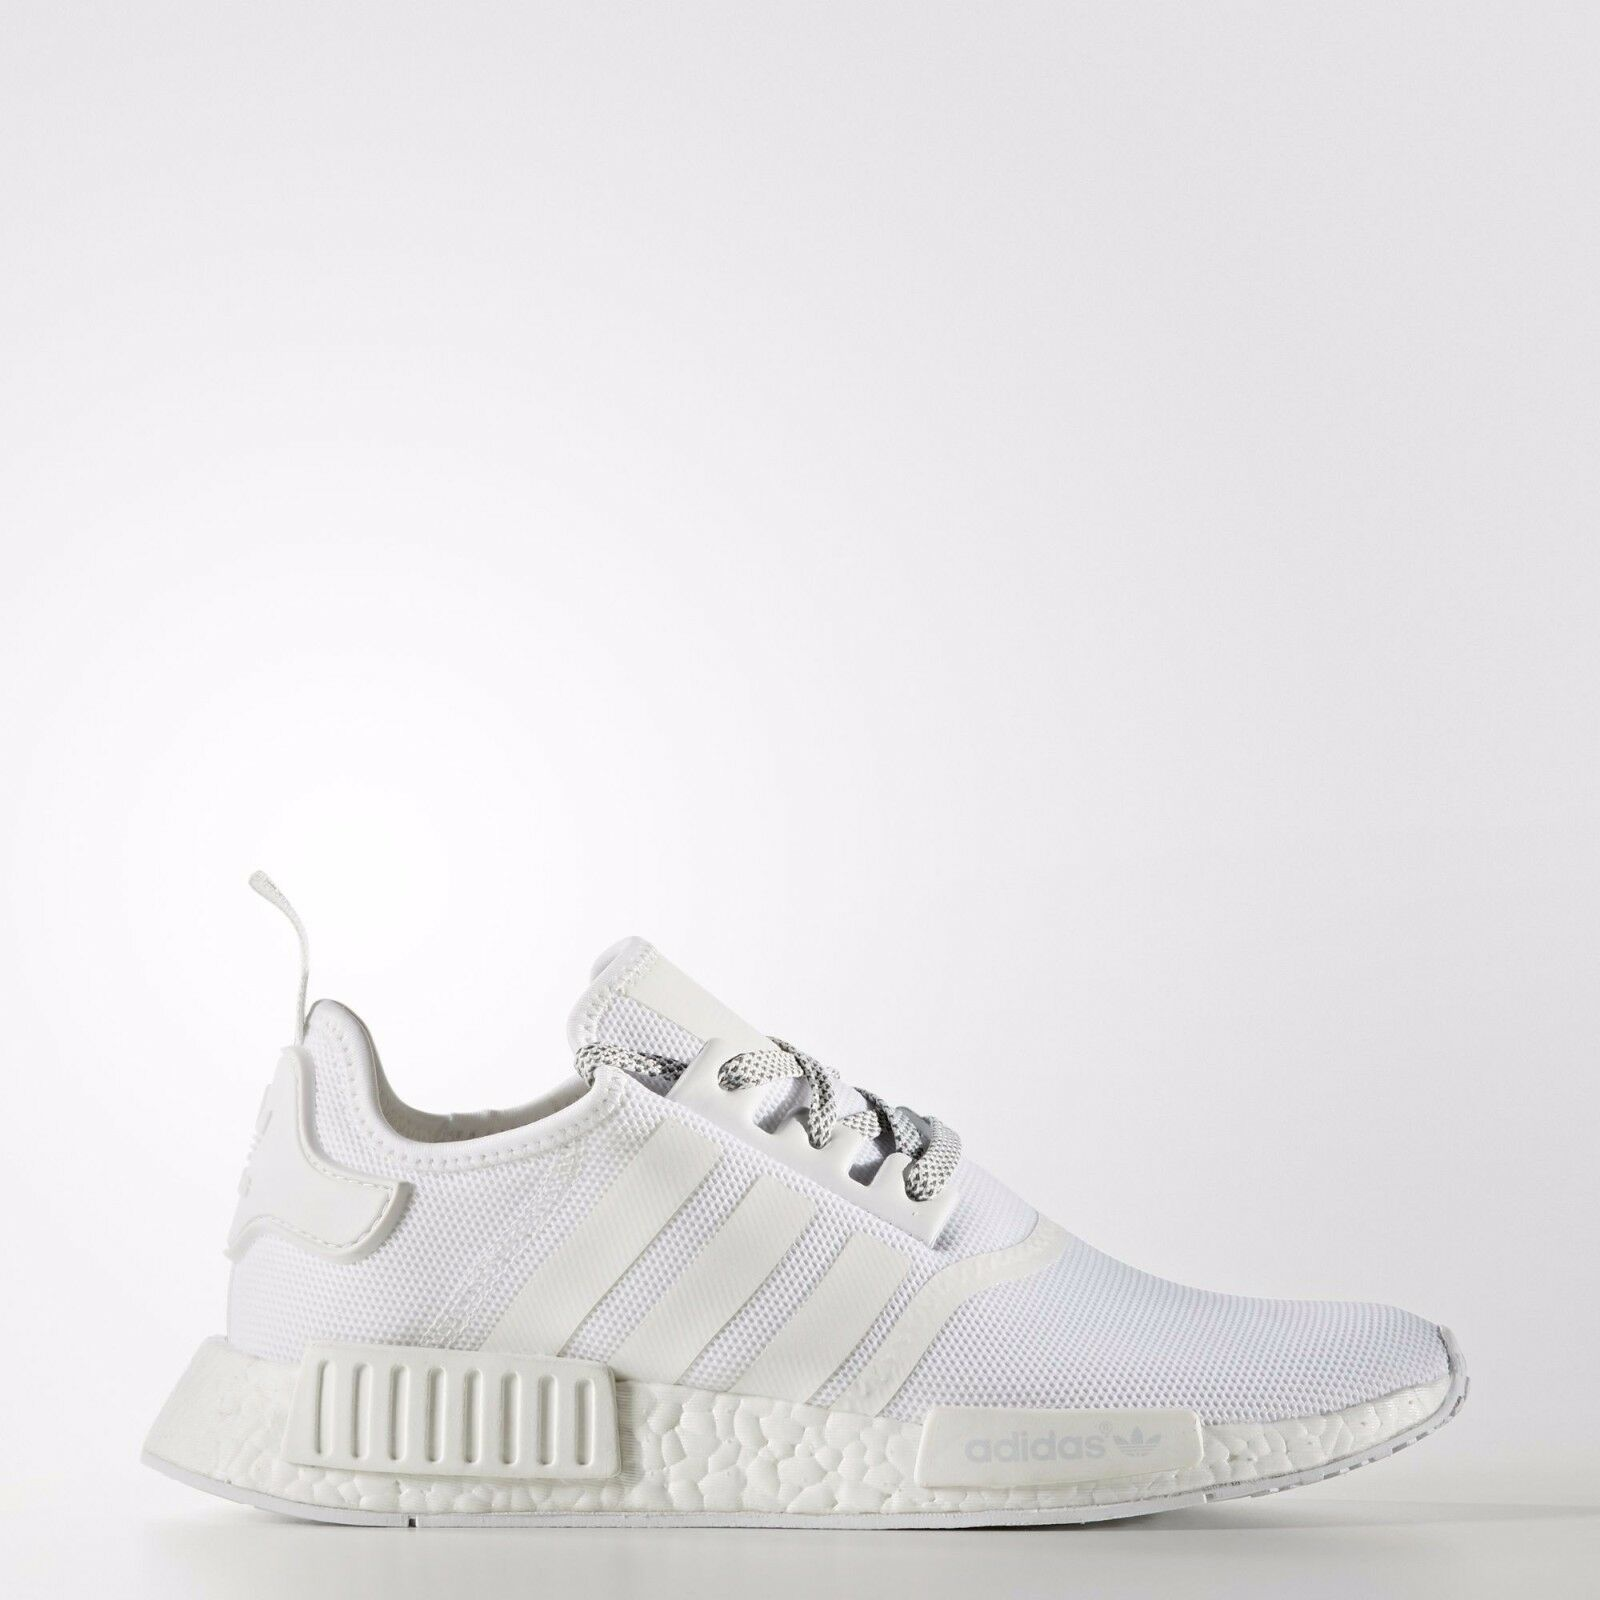 adidas superstar white and gold adidas nmd r1 triple black reflective